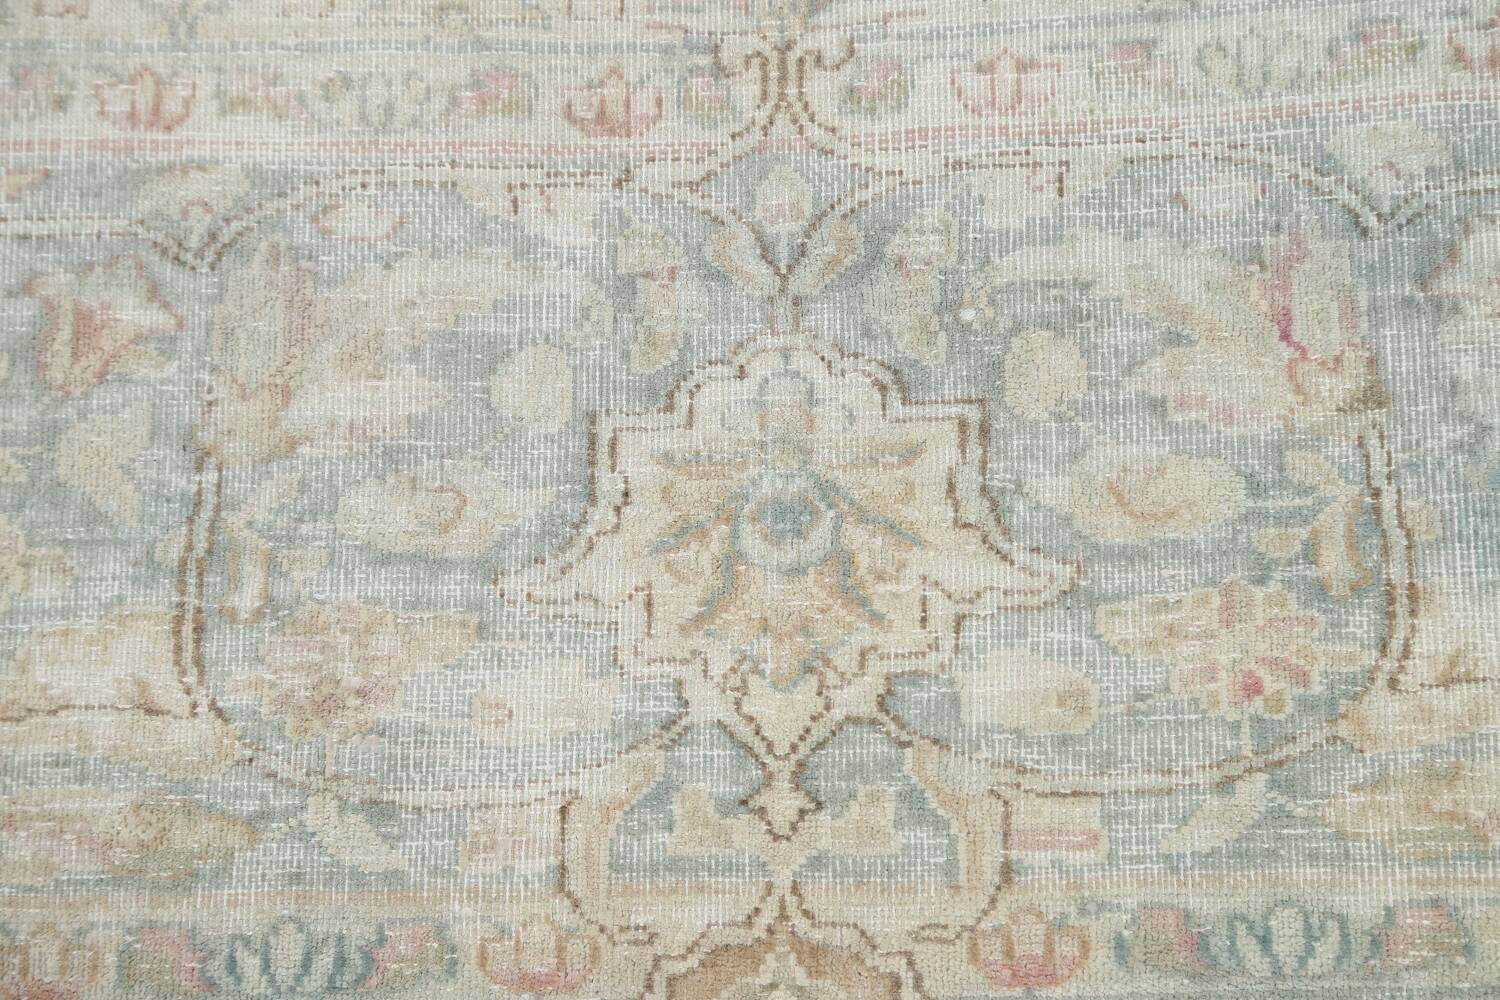 Muted Floral Kerman Persian Area Rug 10x13 image 9